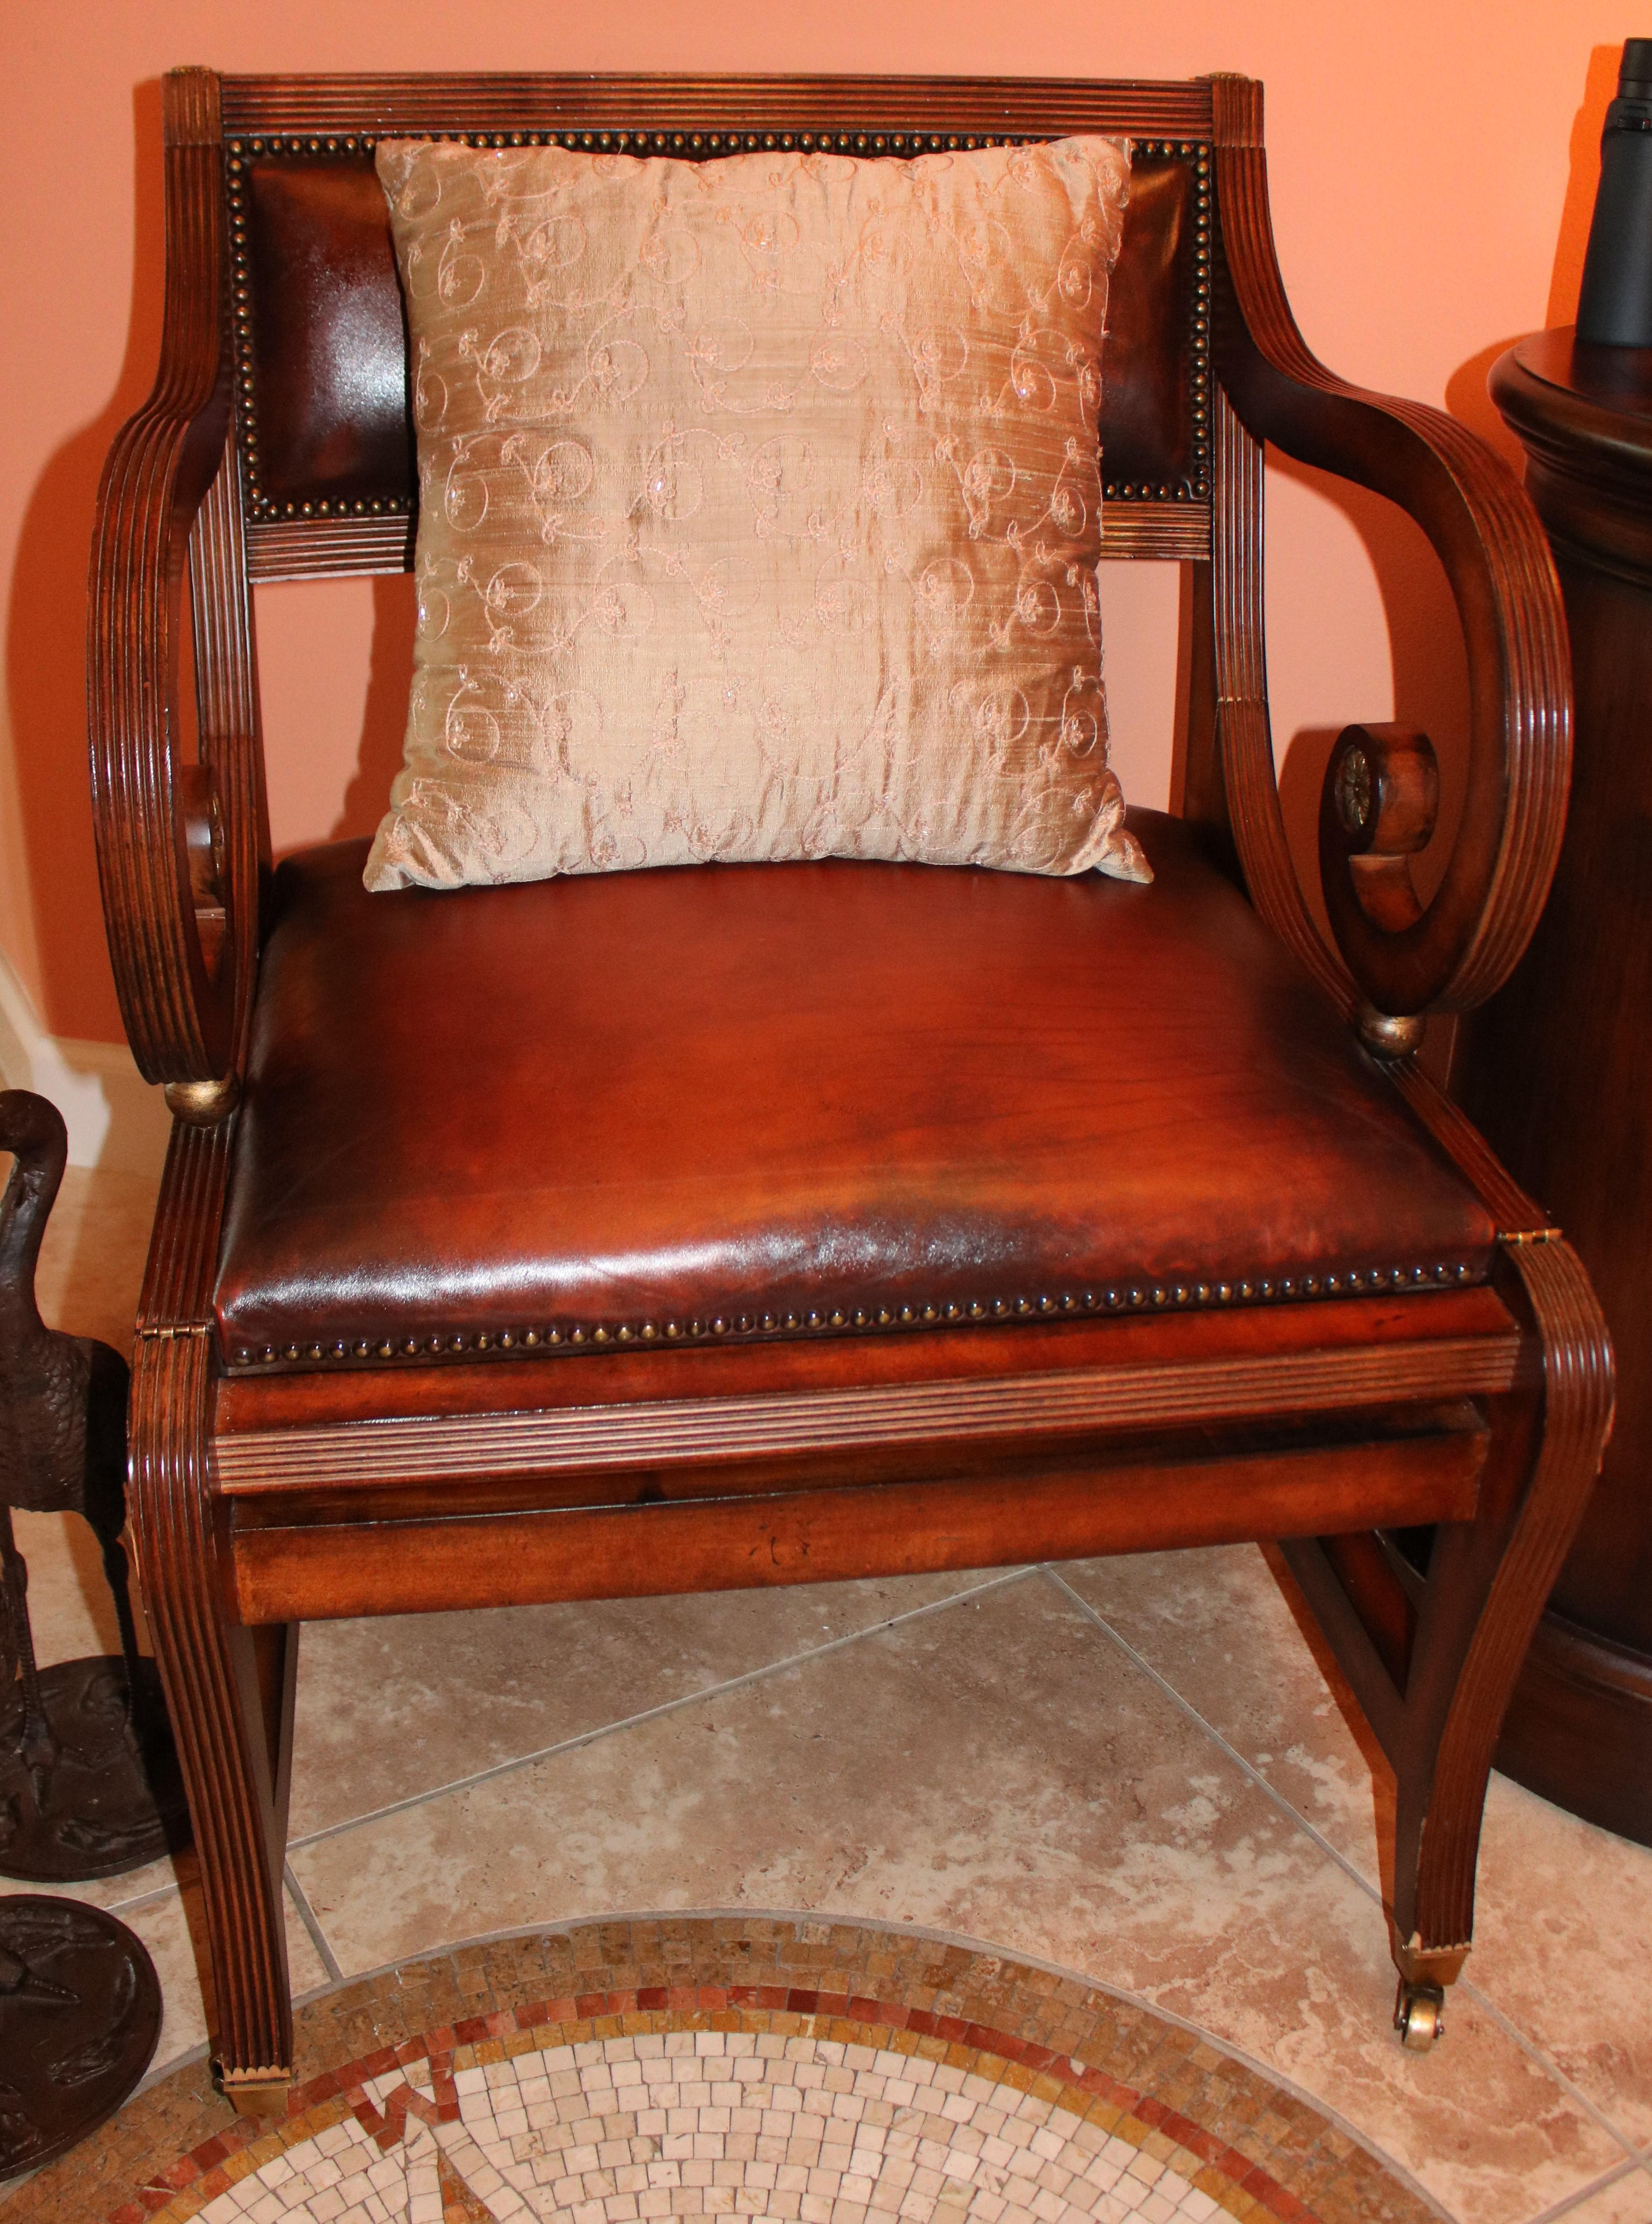 This Chair Is From Councill Craftsman Maker Of High Quality Furniture That  Is Hand Made.